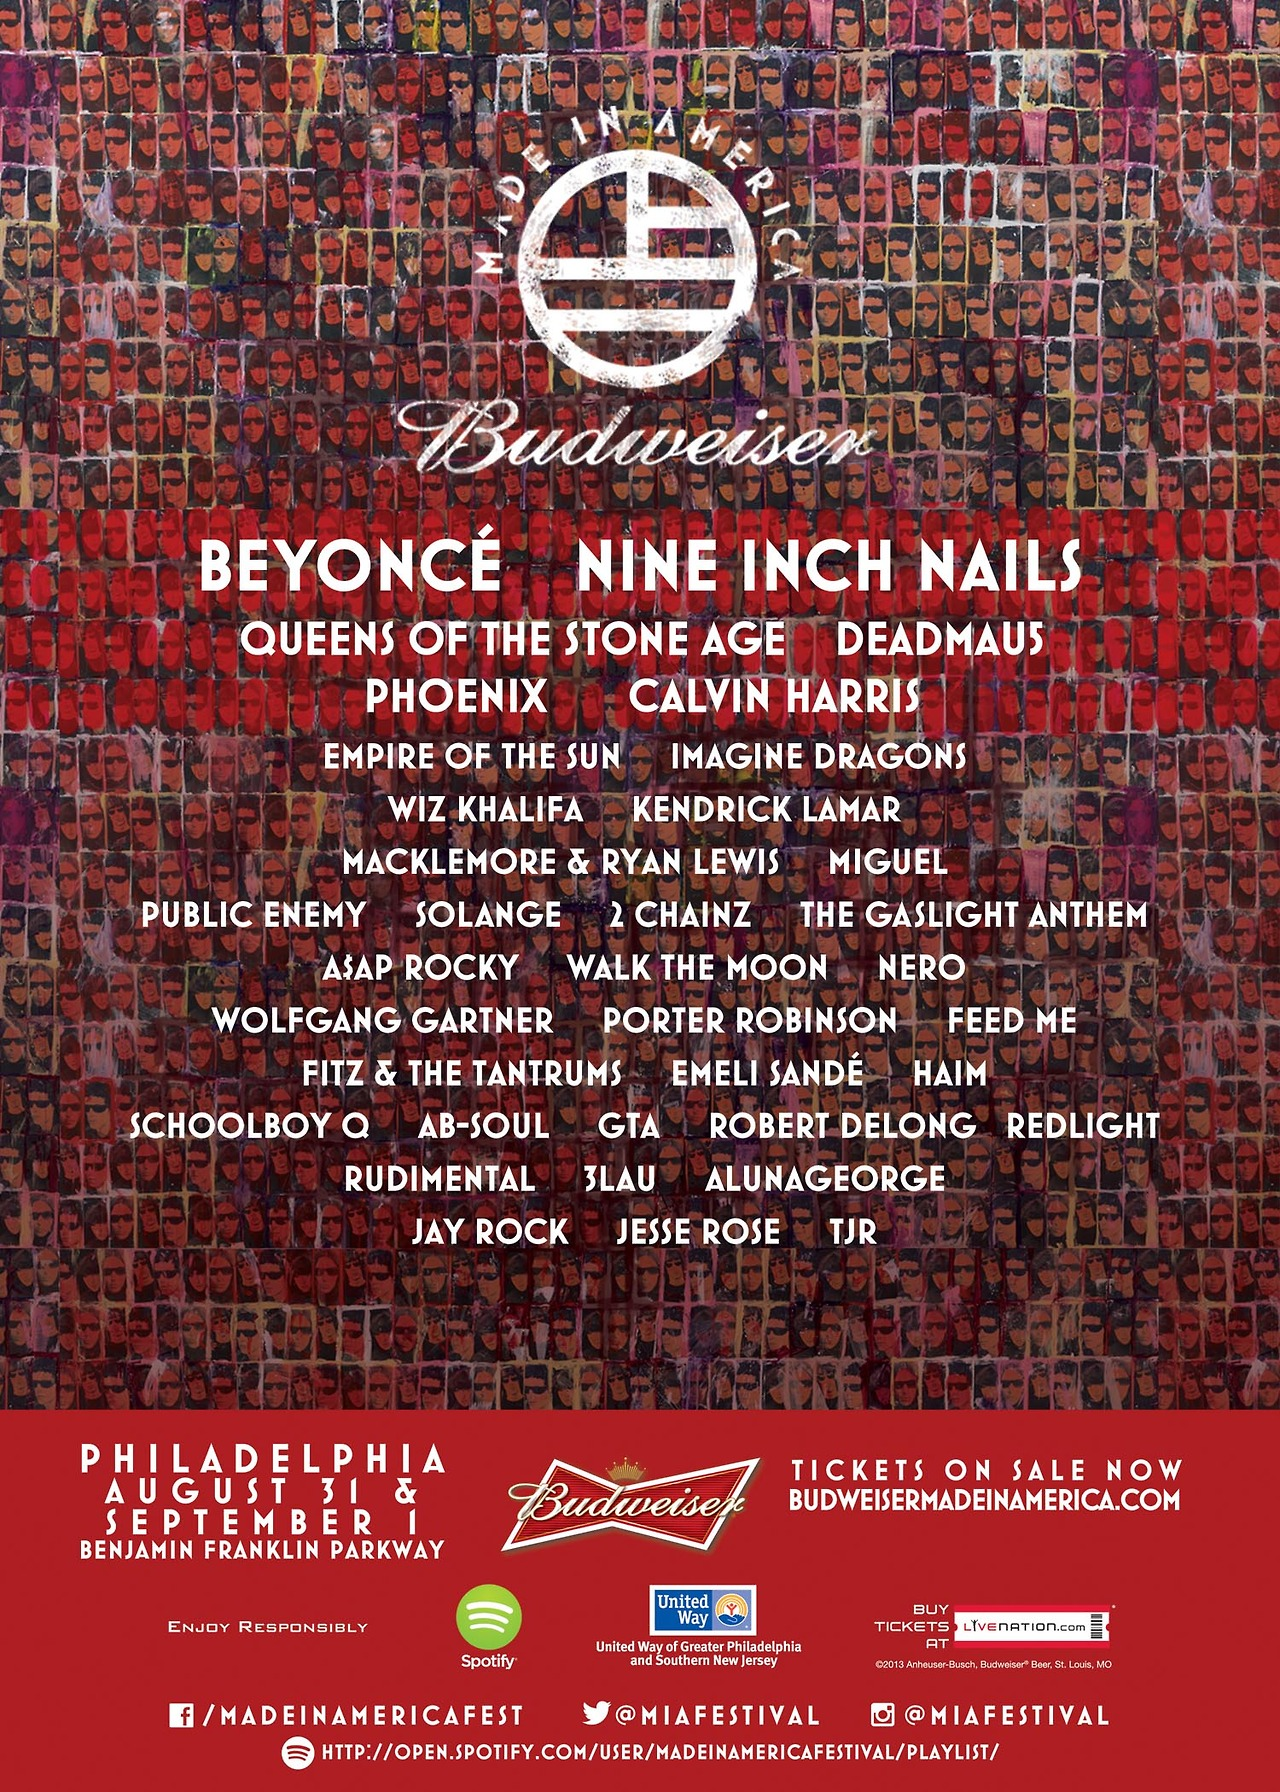 Dang, I kinda wanna go to Philly for this…Jay-Z has done it again with a BOSS lineup for the  Made In America  festival. It will take place in Philly on August 31st and September 1st. The premiere of this festival was a success last year and it looks to do well this year with performers like TDE, A$AP Rocky, Beyonce, and many more. Enjoy.   -HB